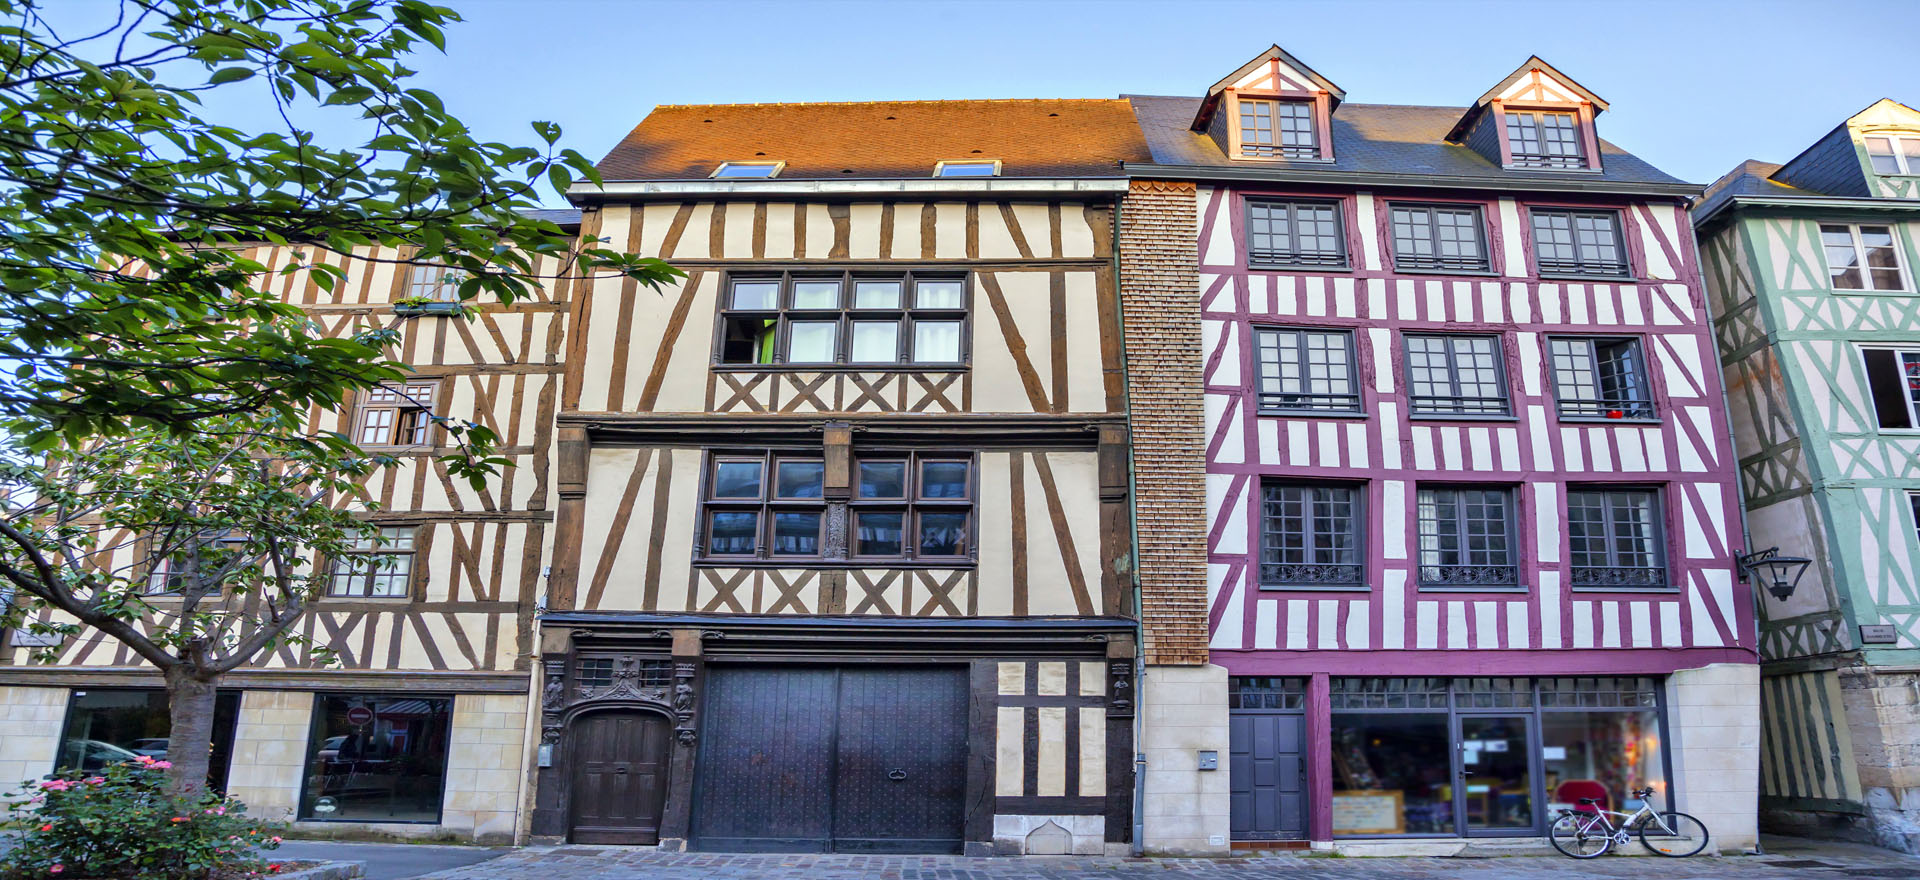 Traditional timber houses, Rouen